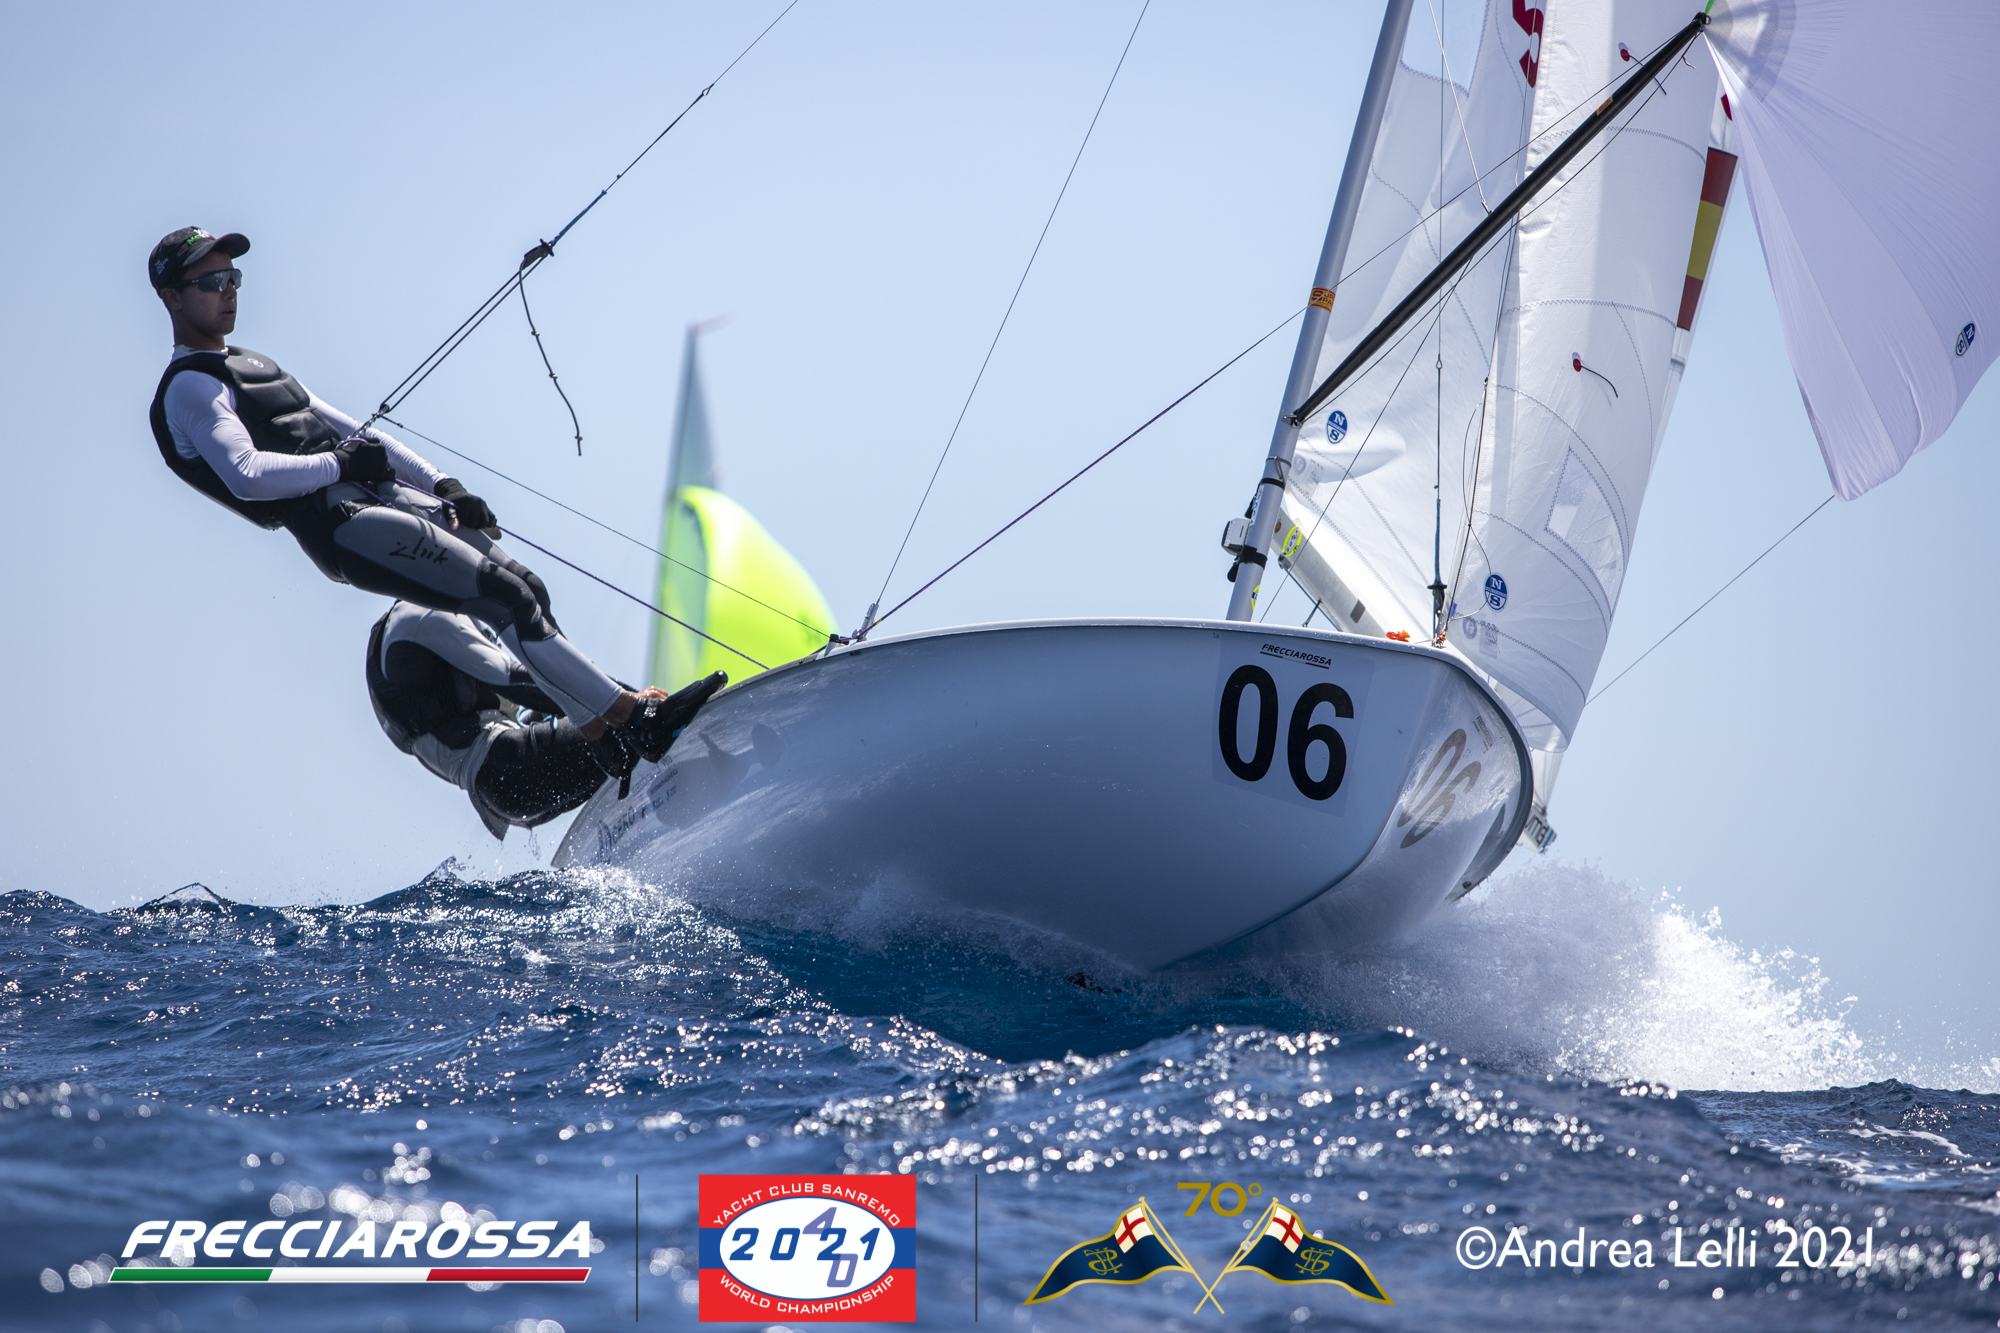 Superb sailing conditions on fifth day of racing in Sanremo